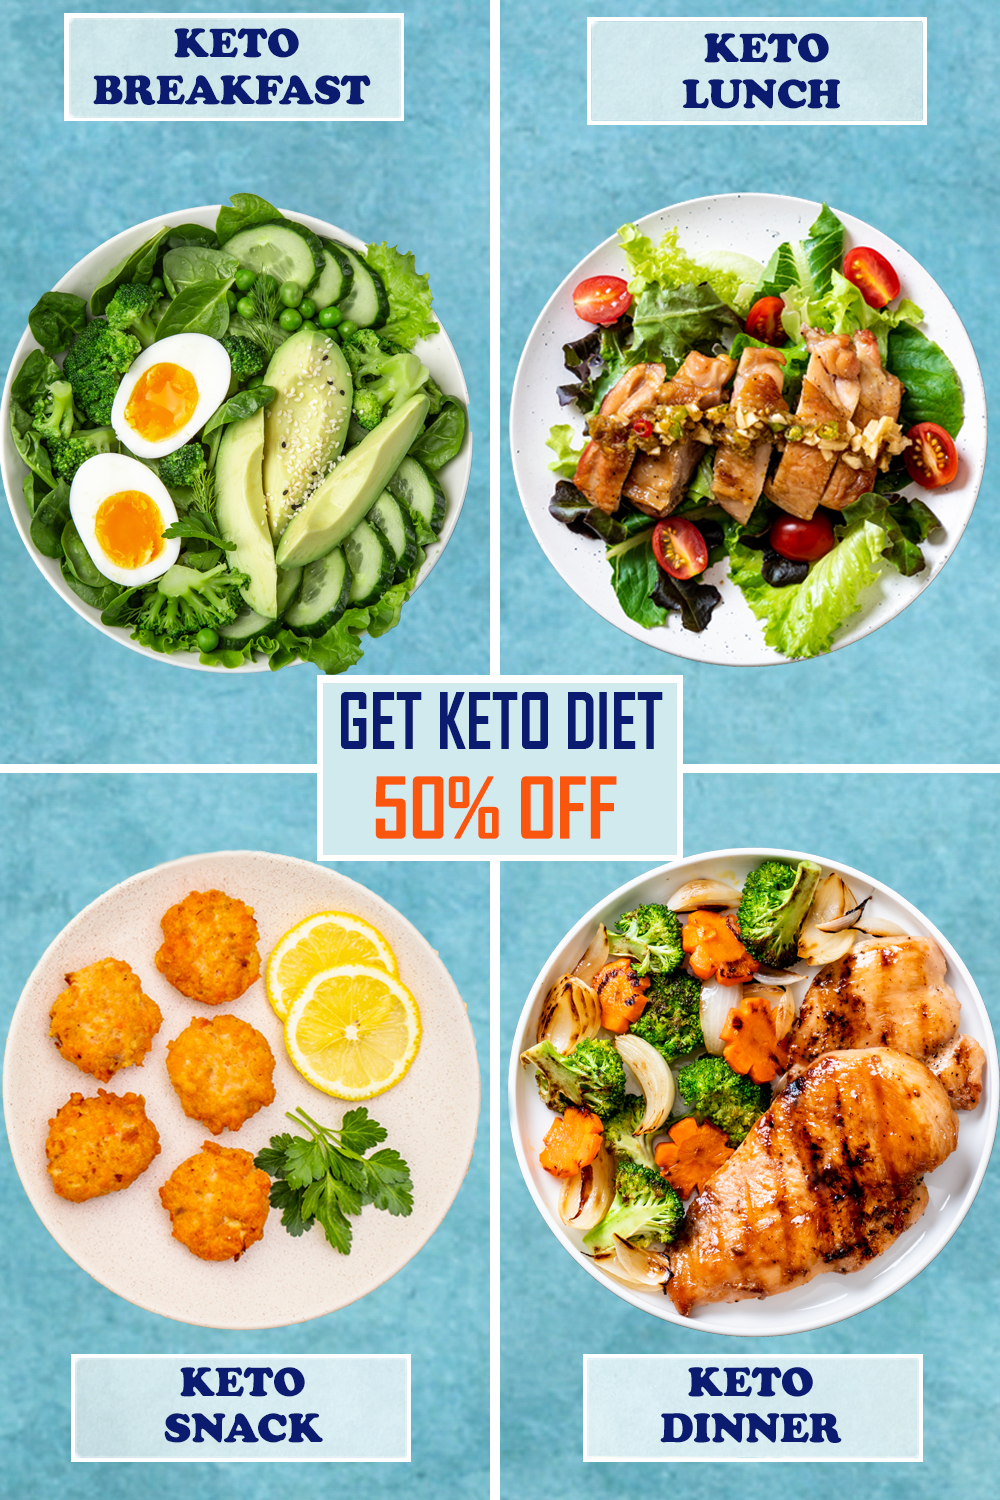 The easy-to-follow KETO Meal Plan images